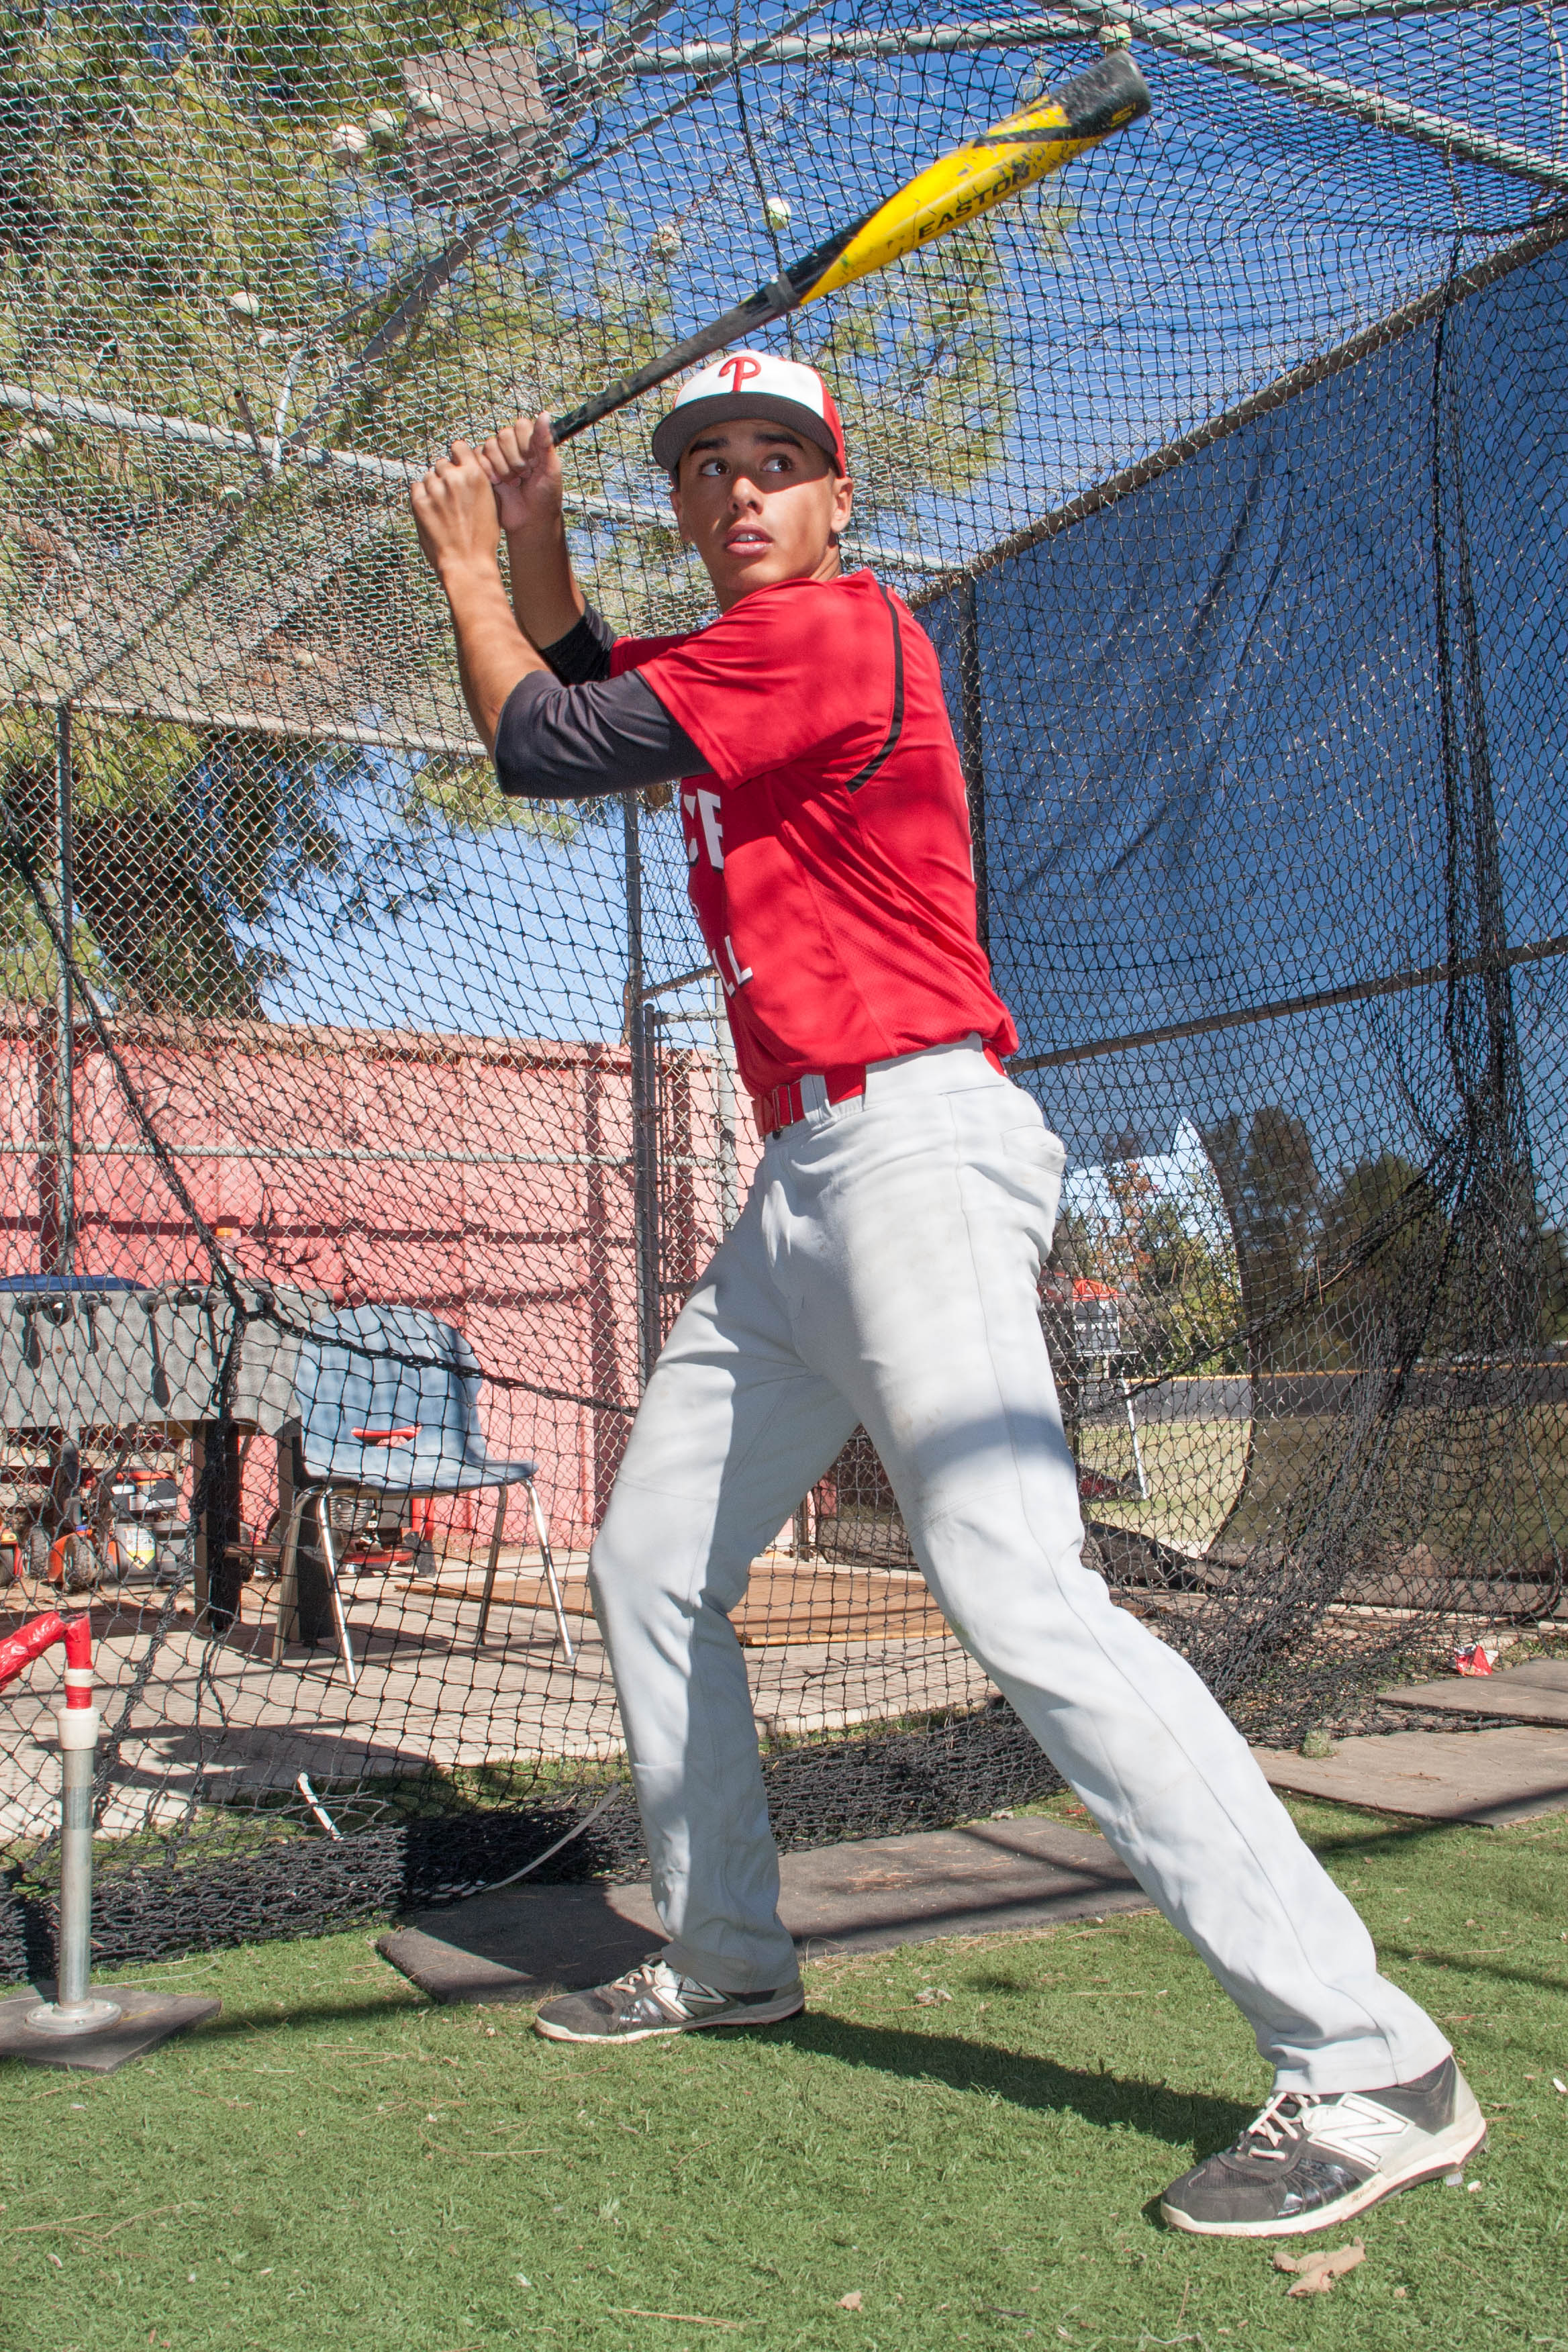 Making the grade: his road to the MLB